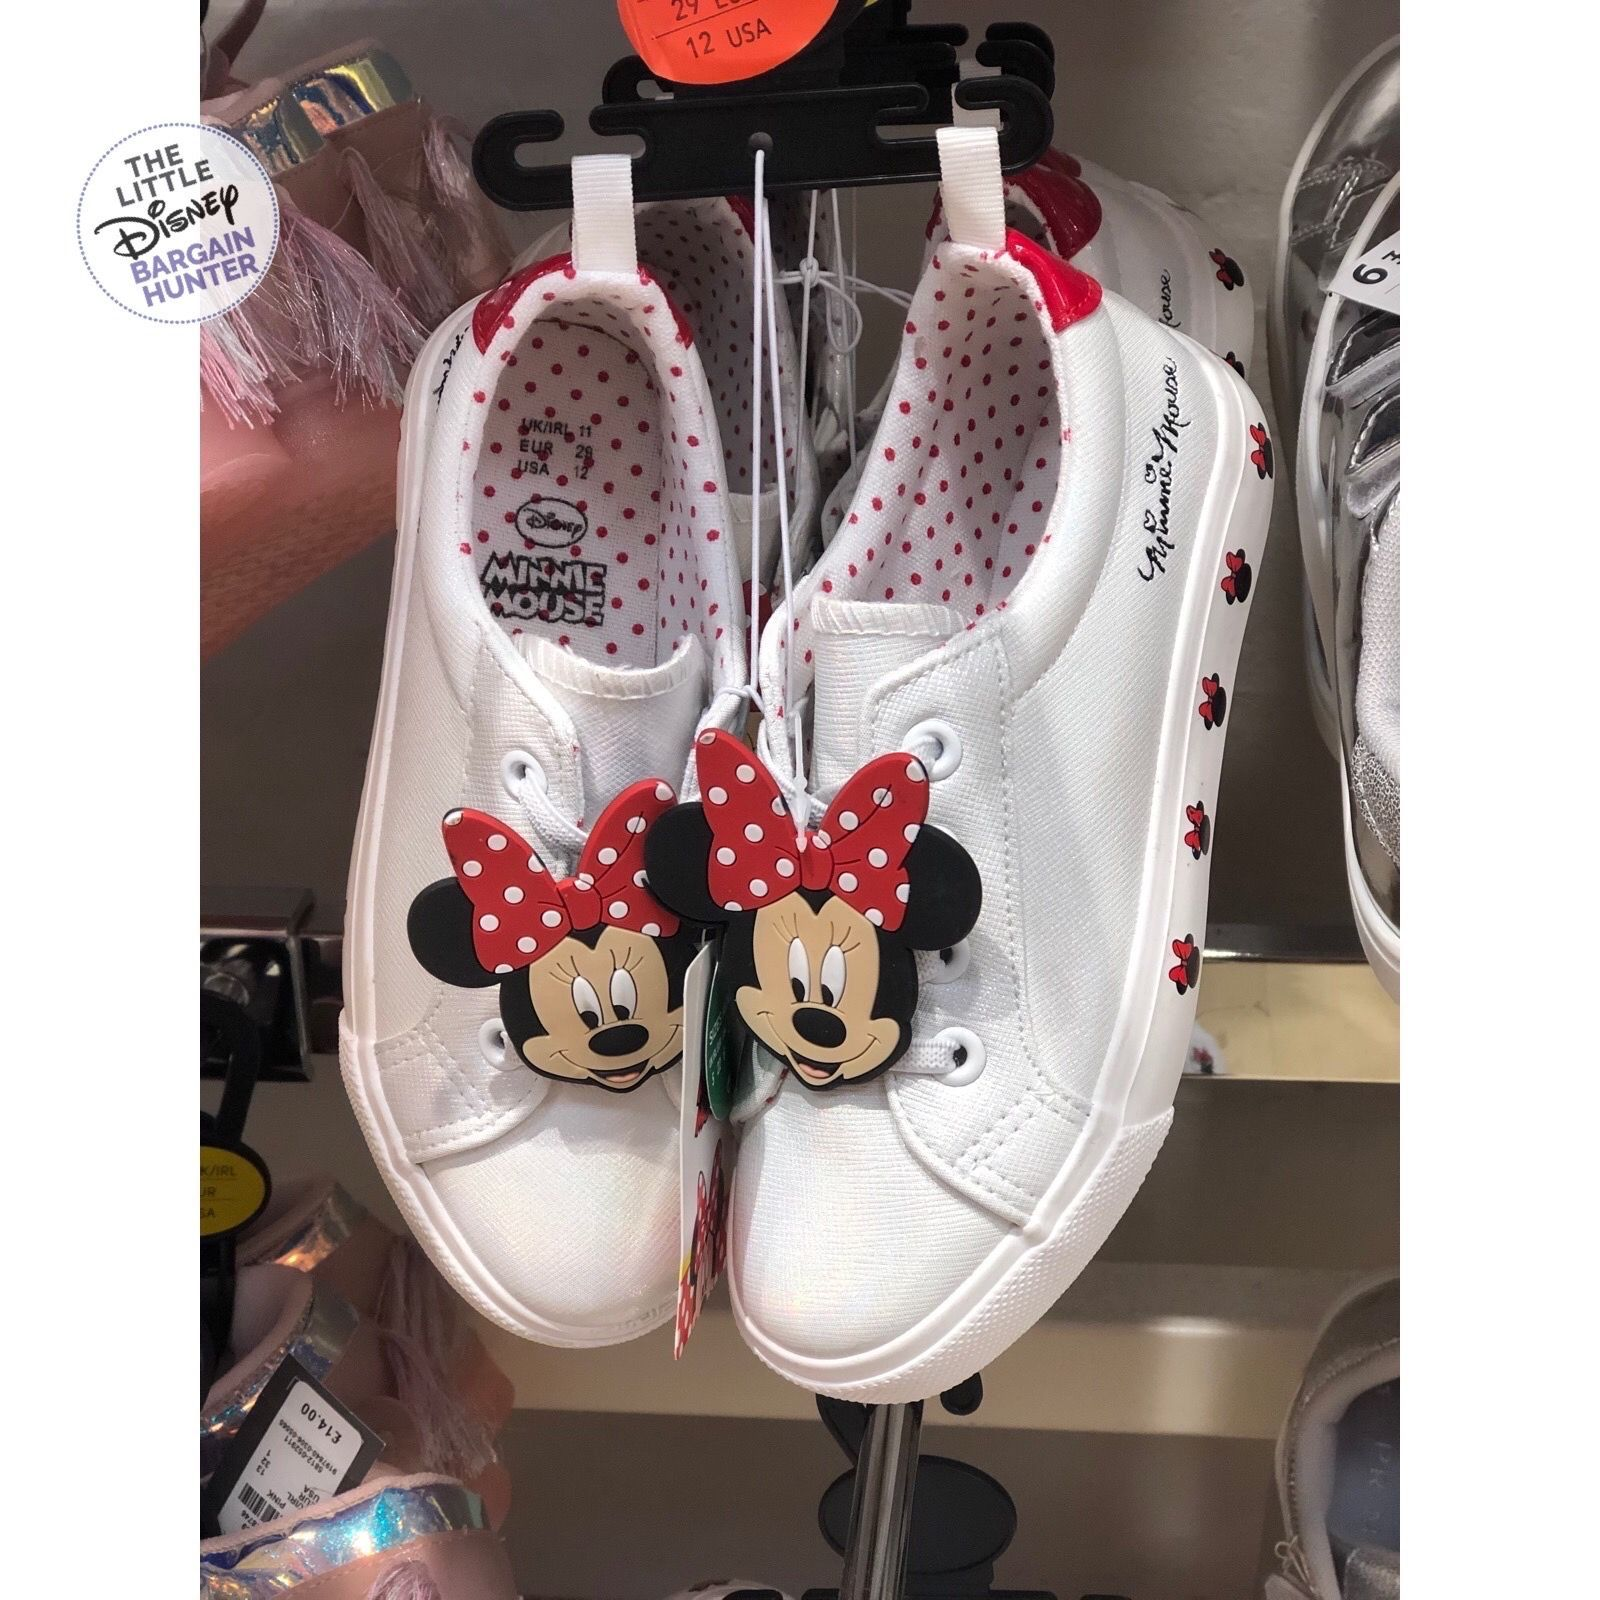 Kids Minnie Mouse trainers spotted in